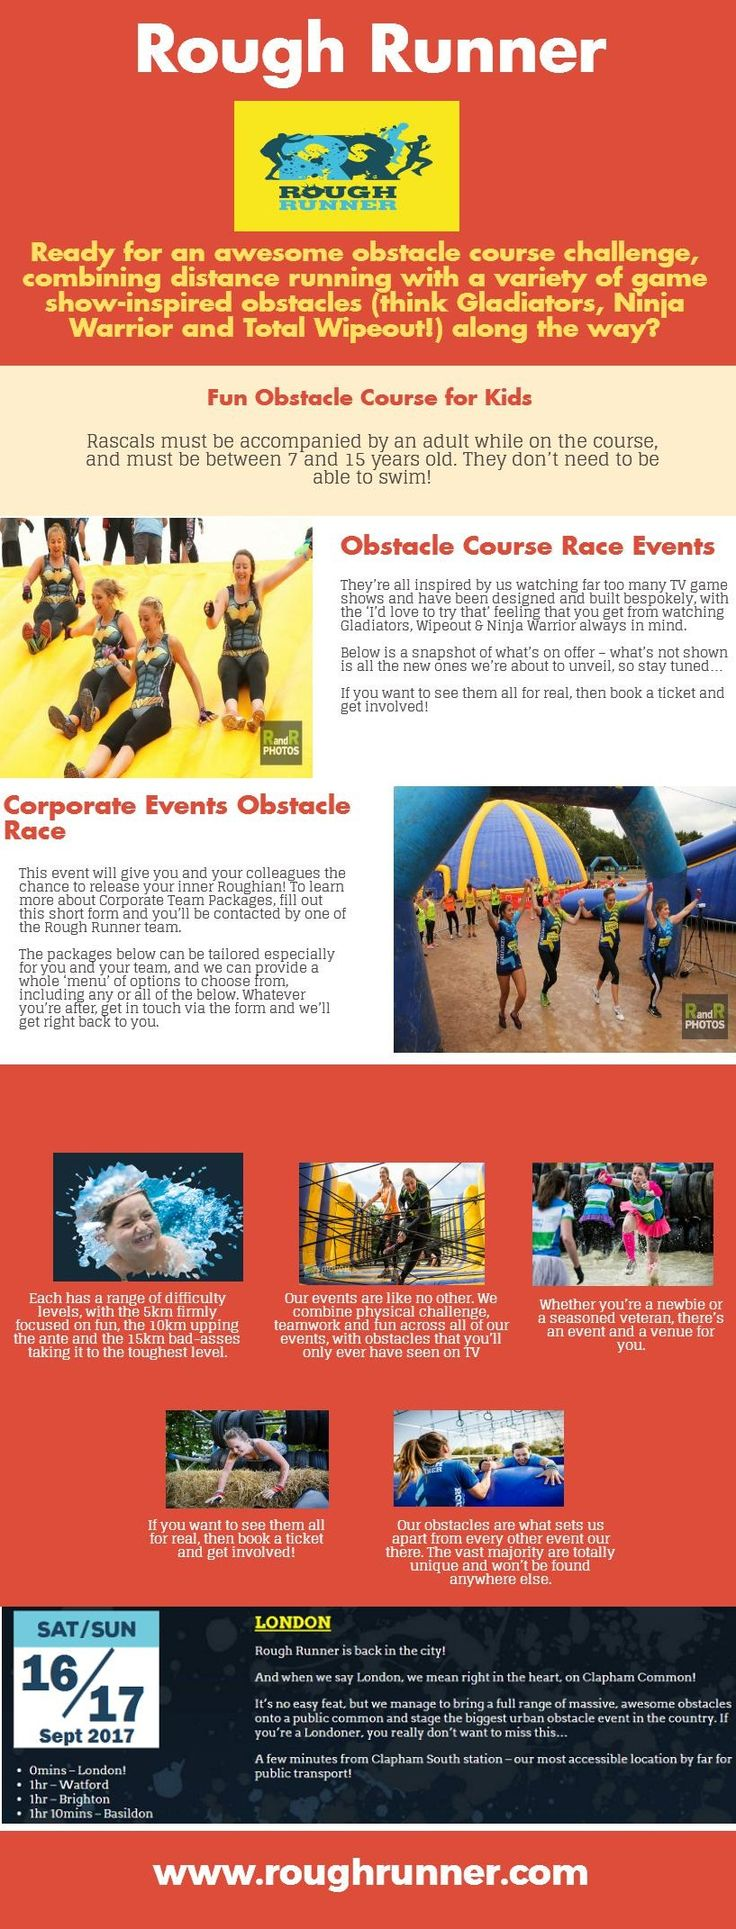 Obstacle Races and Mud Runs is a sport in which a participant, traveling on foot, must overcome various physical challenges that are in the form of obstacles. Mud and trail runs are united and the races are planned to result in mental and physical collapse. Book today at http://roughrunner.com/book/